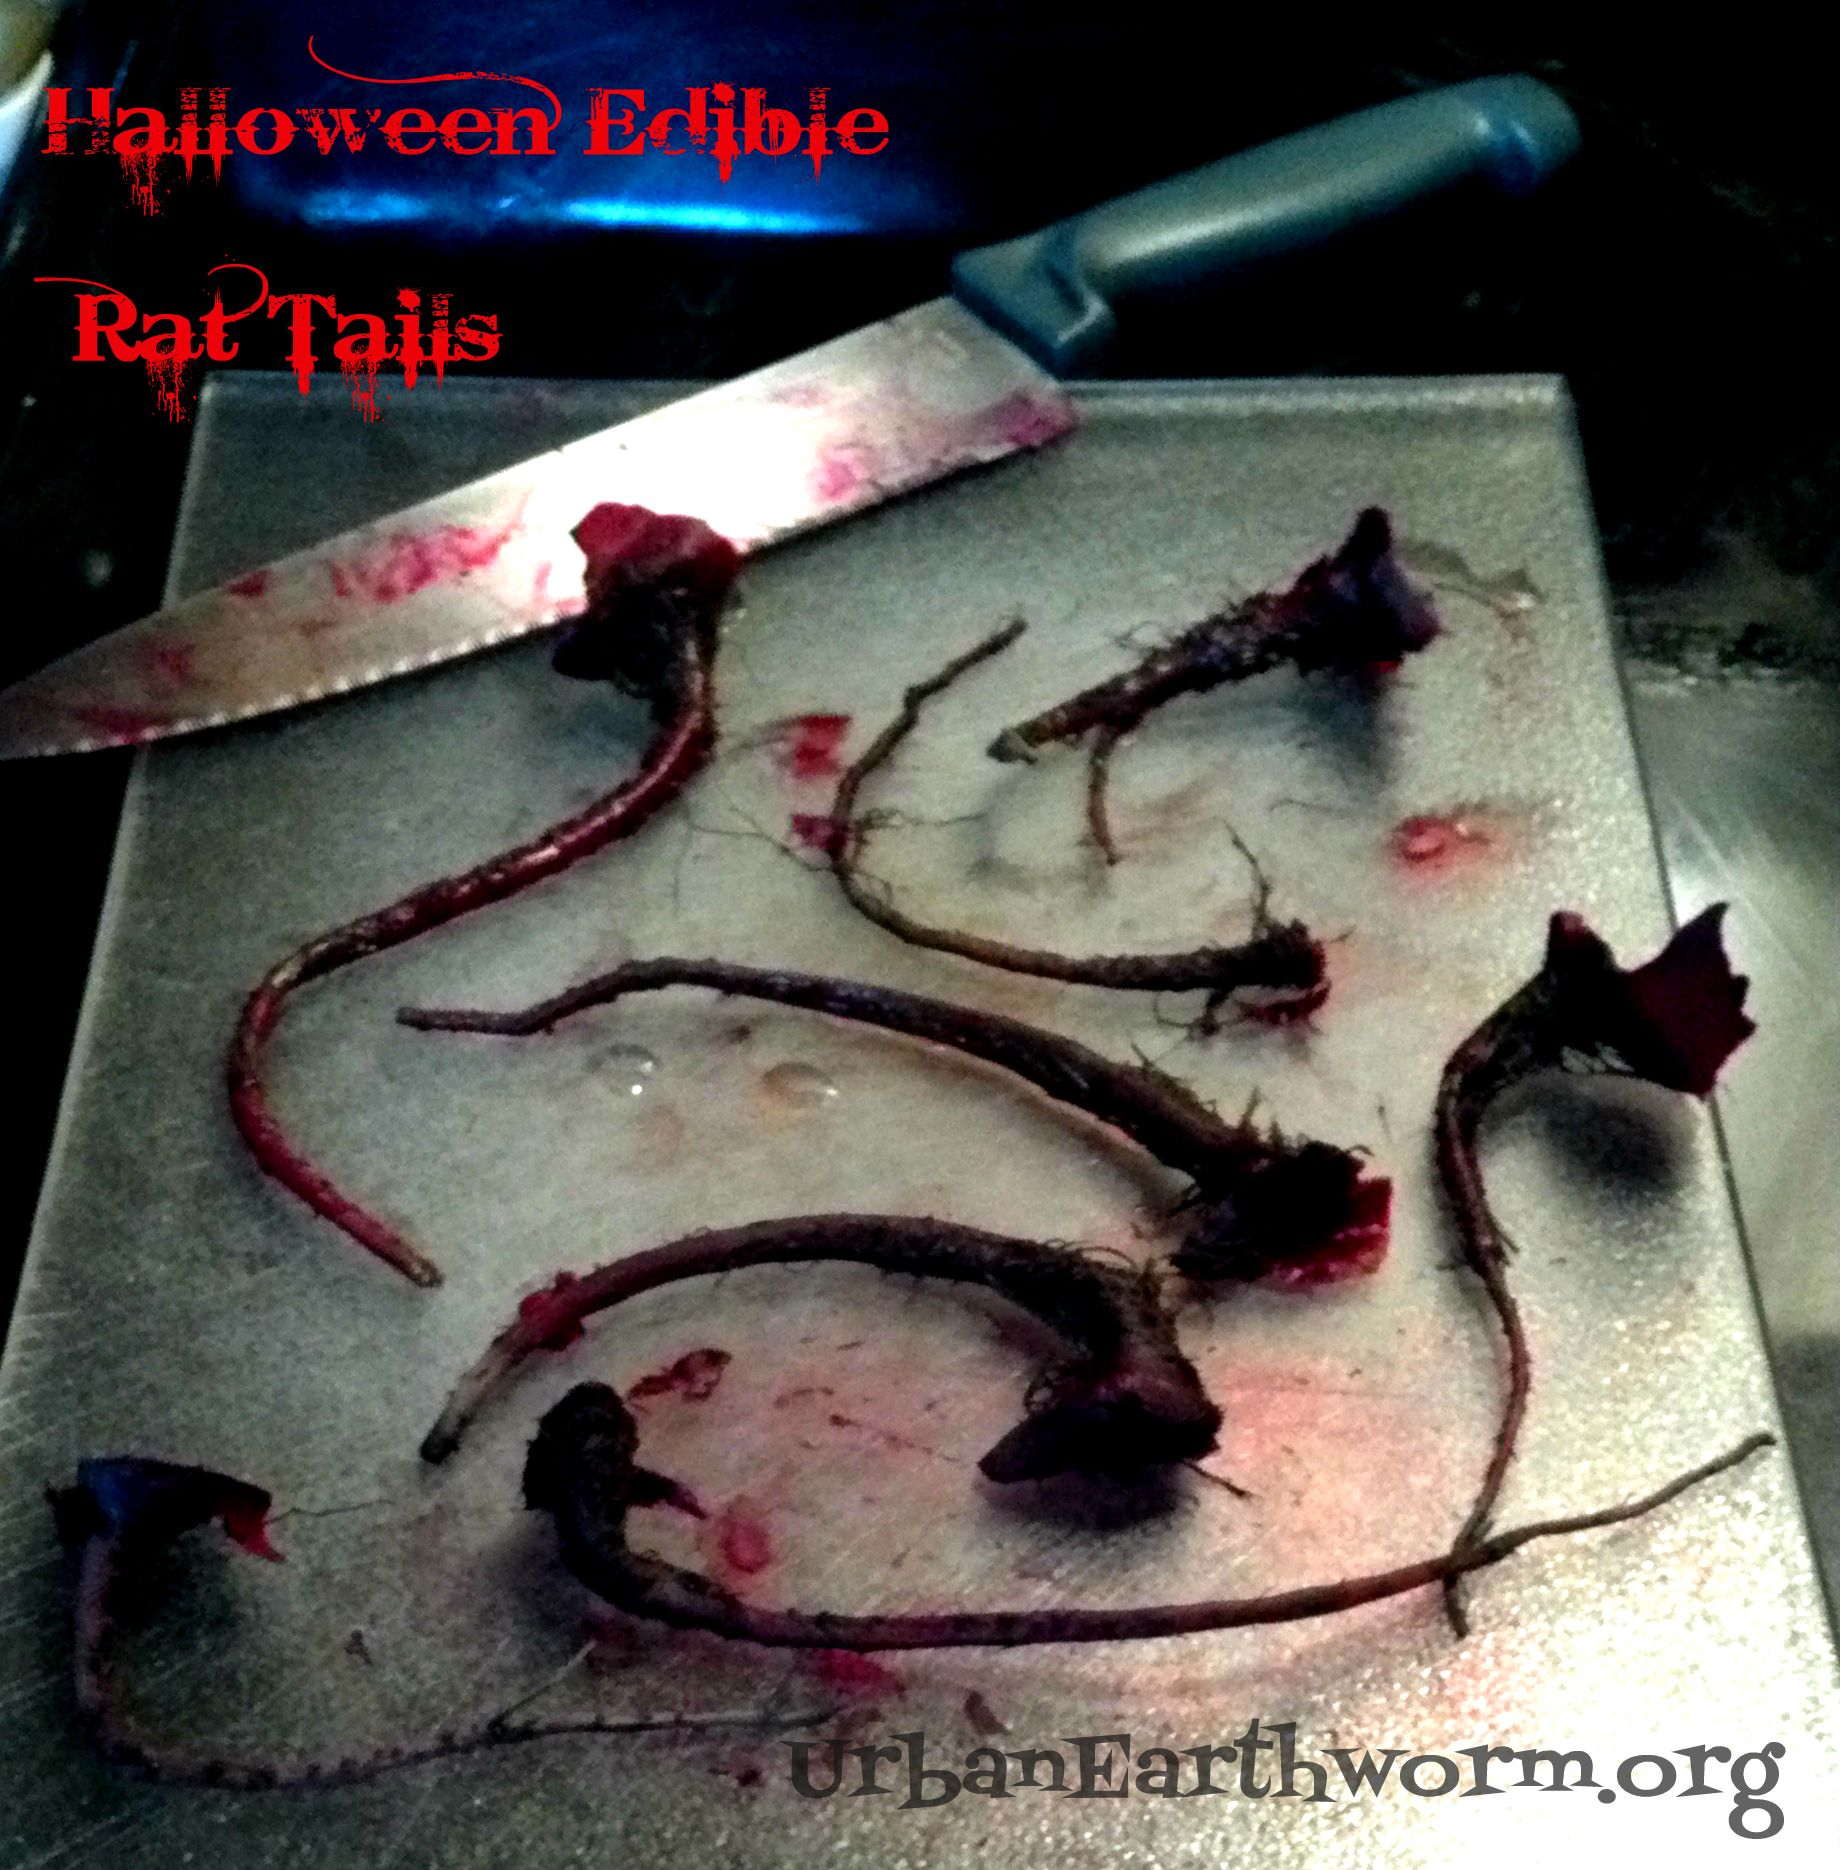 Edible Rat Tails (one ingredient: Beets) as Halloween Food or for ...